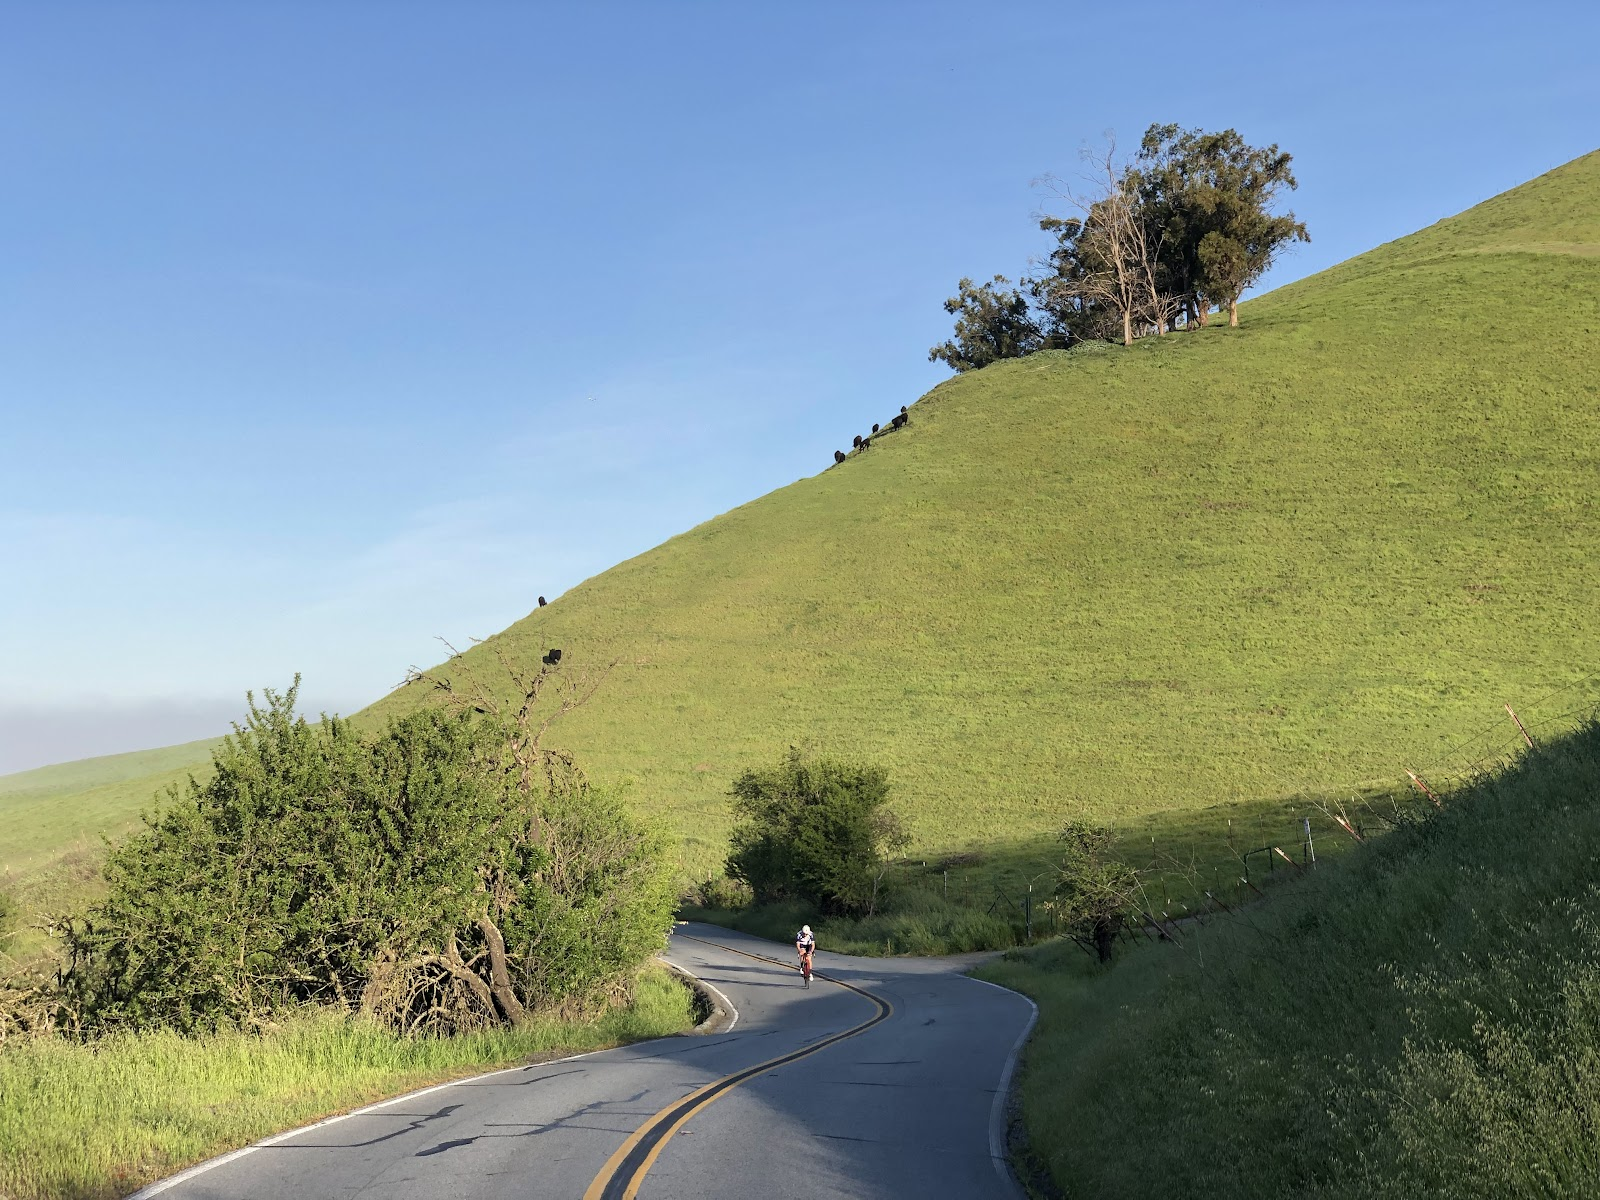 Bike climb Mt. Hamilton  - cycling on bike riding on road with hillside and grazing cows in background.